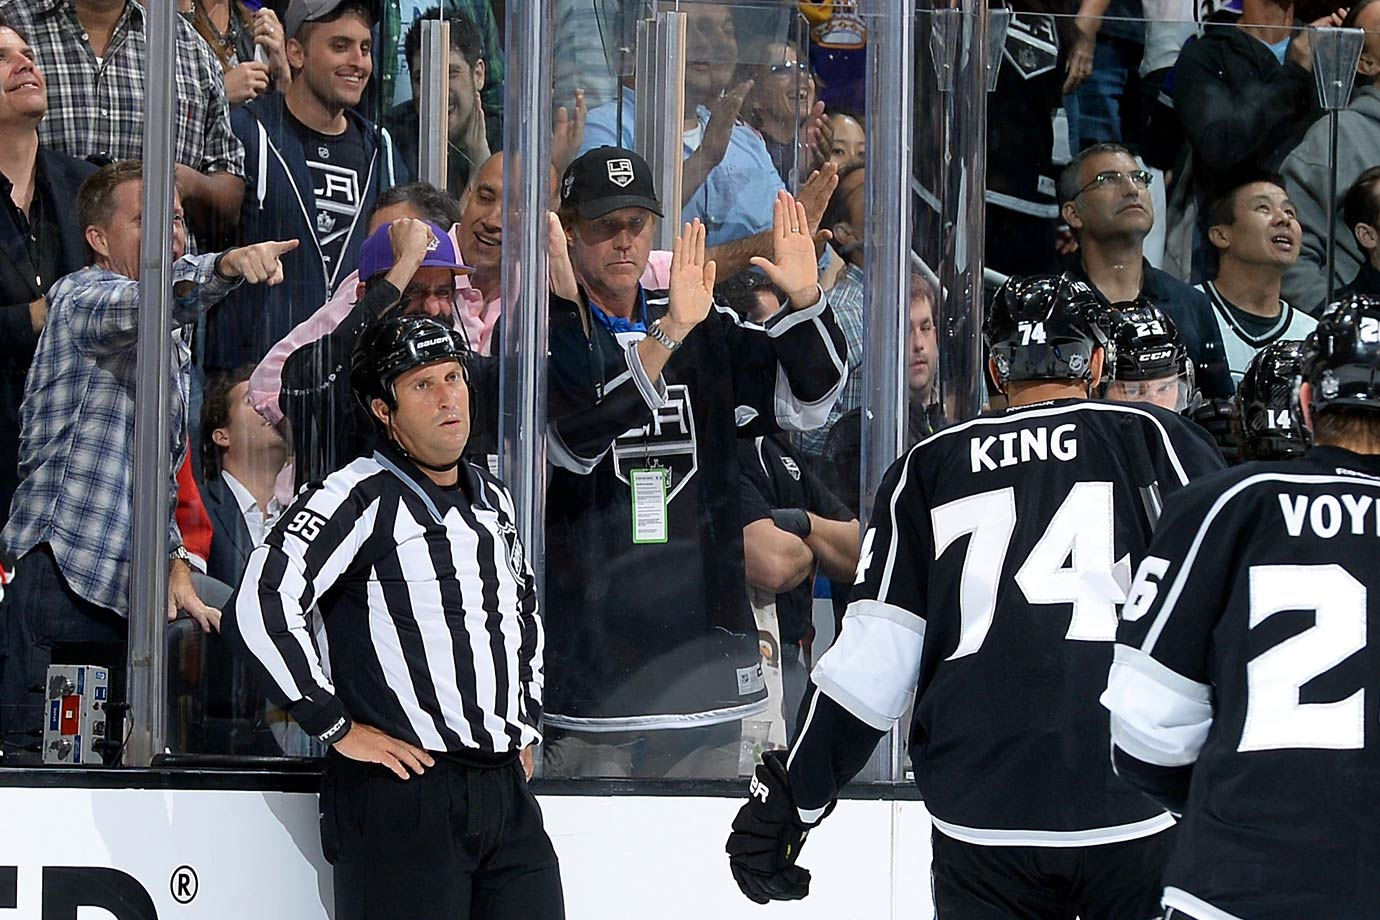 Will Ferrell cheers during Game Six of the Western Conference Final between the Los Angeles Kings and Chicago Blackhawks on May 30, 2014 at Staples Center in Los Angeles.